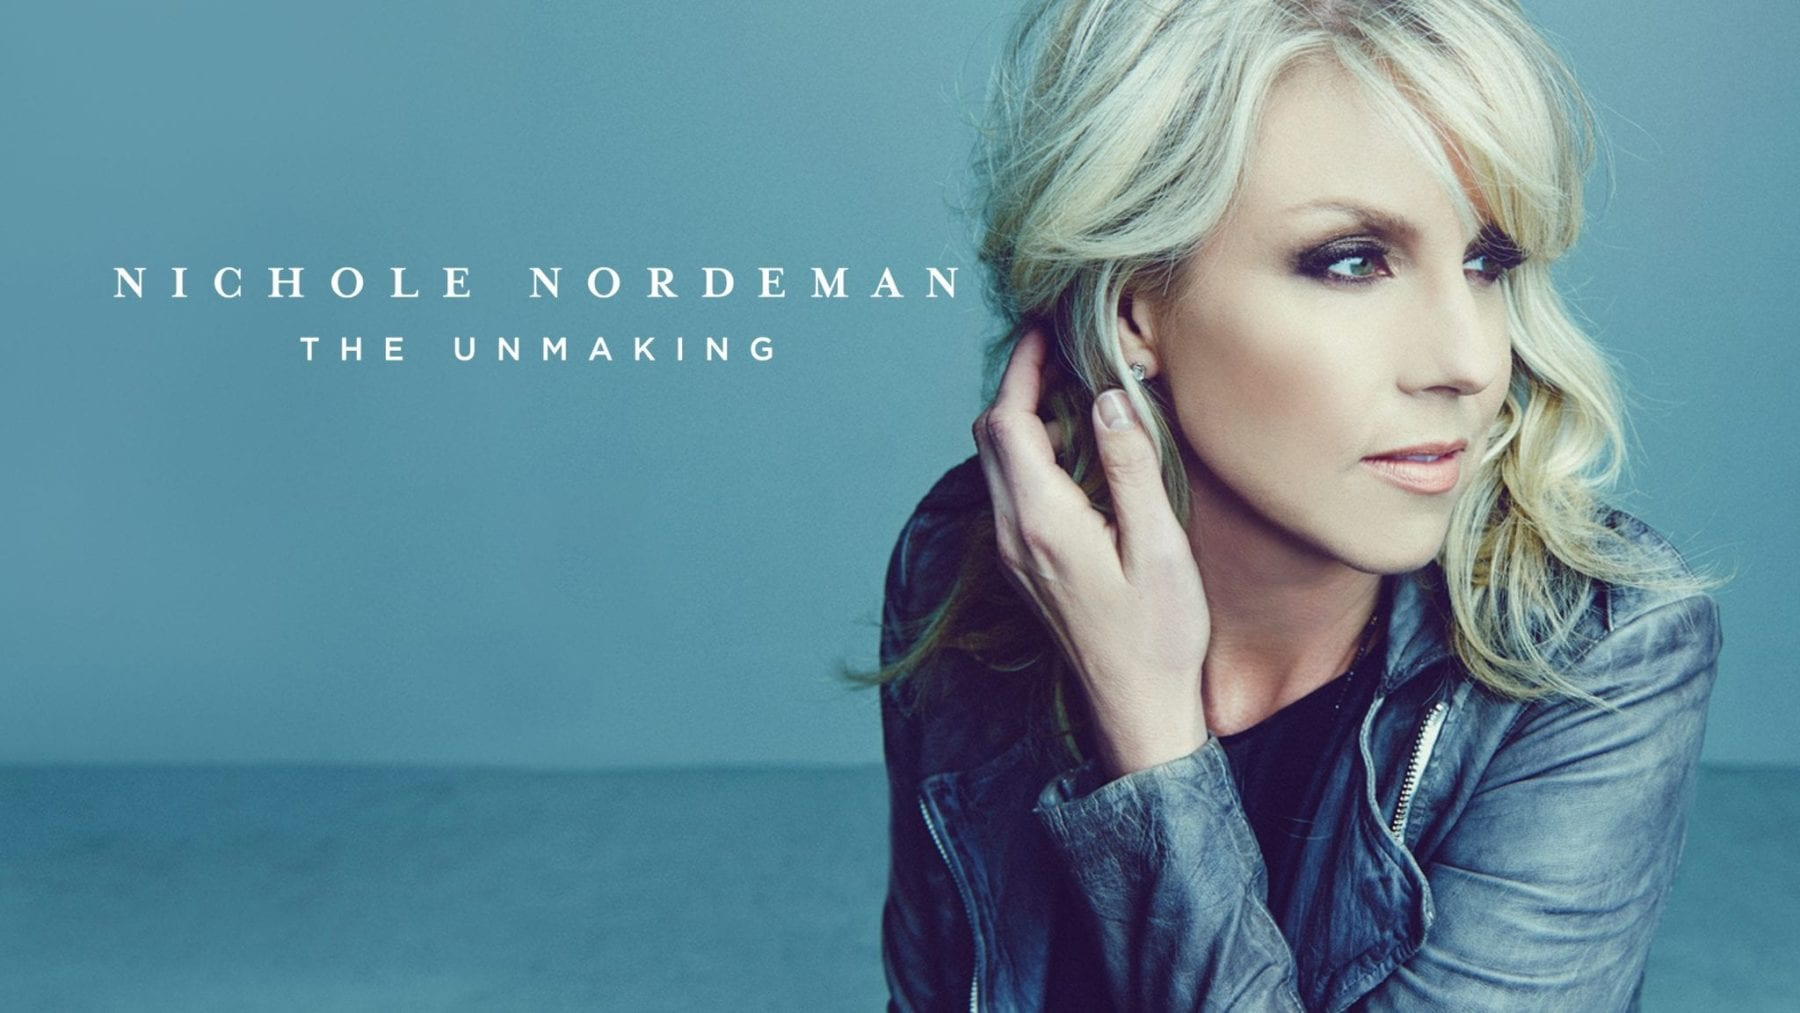 Nichole Nordeman The Unmaking